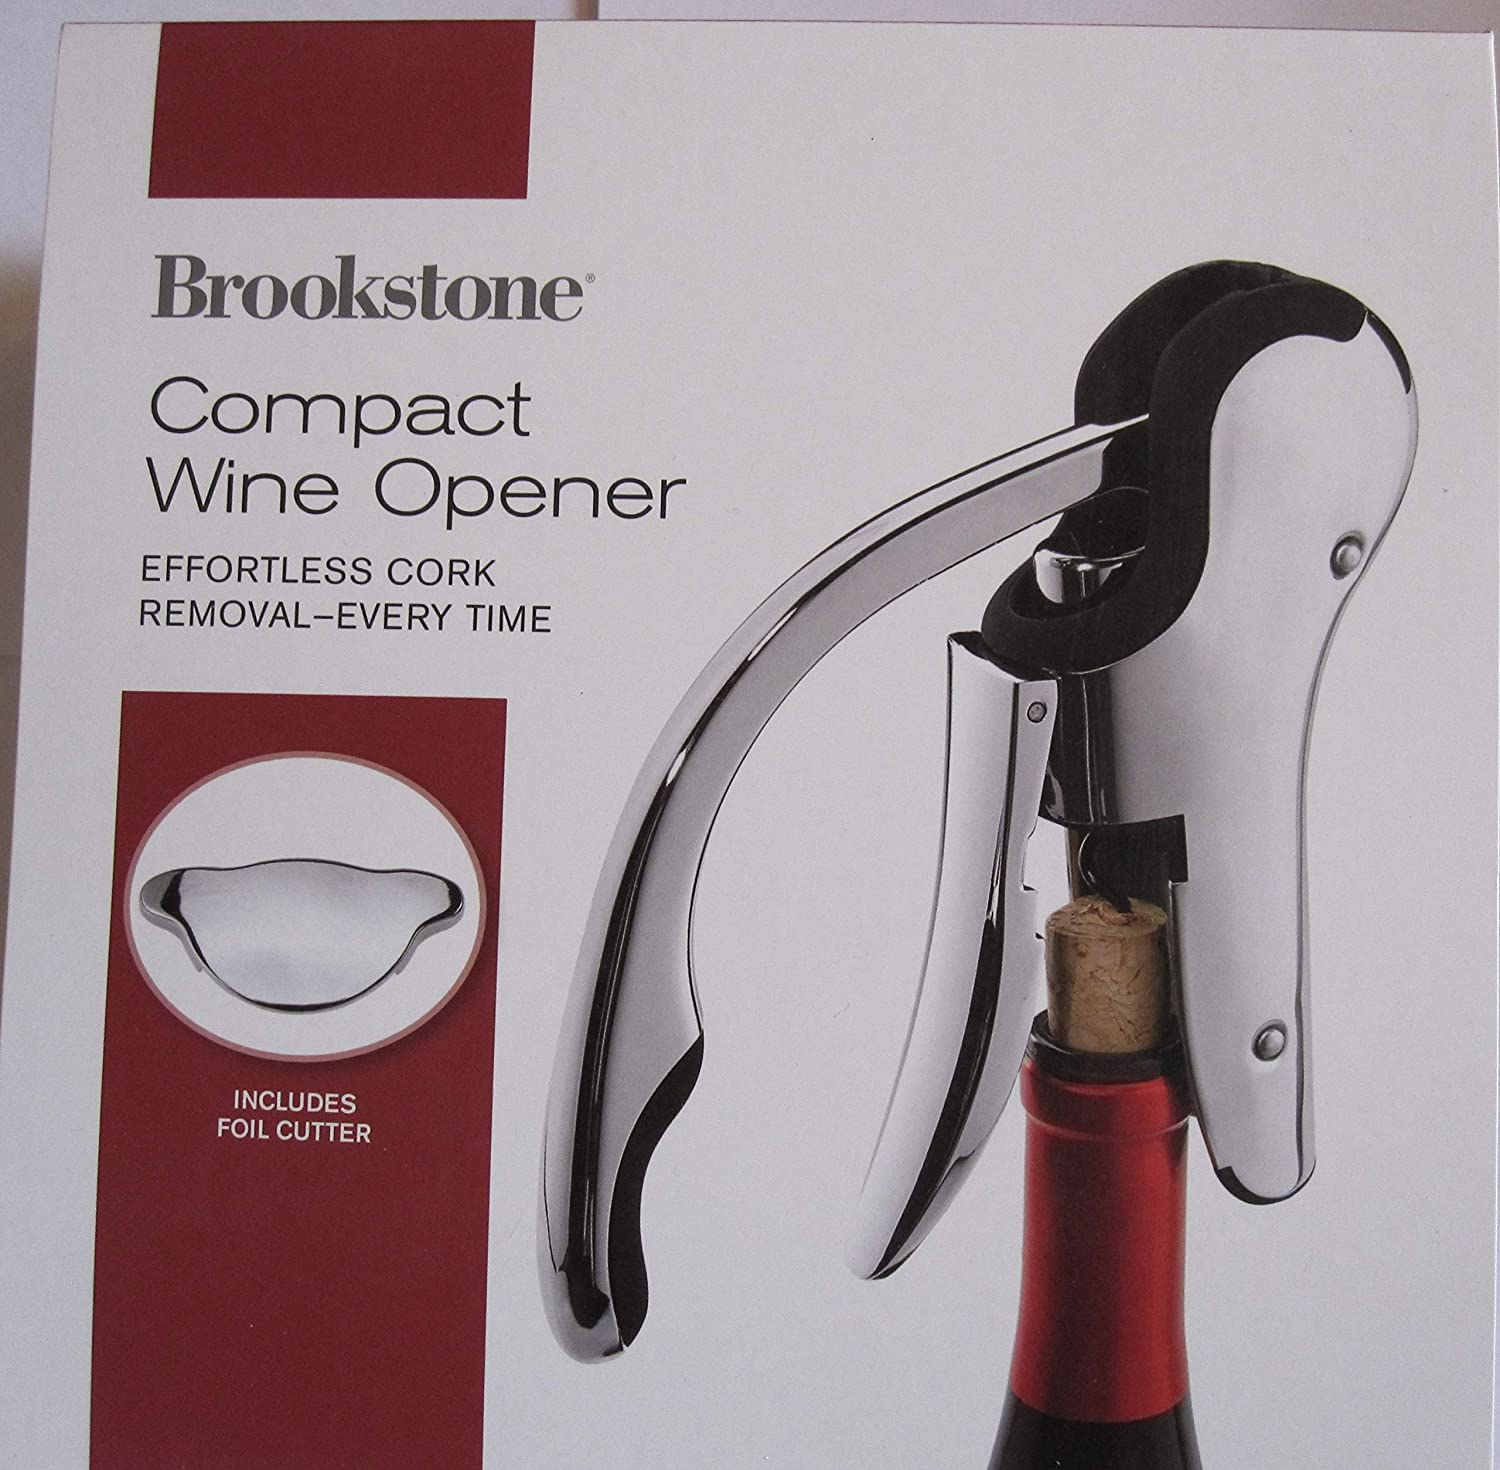 Brookstone Connoisseurs Compact Wine Opener COMINHKR021113